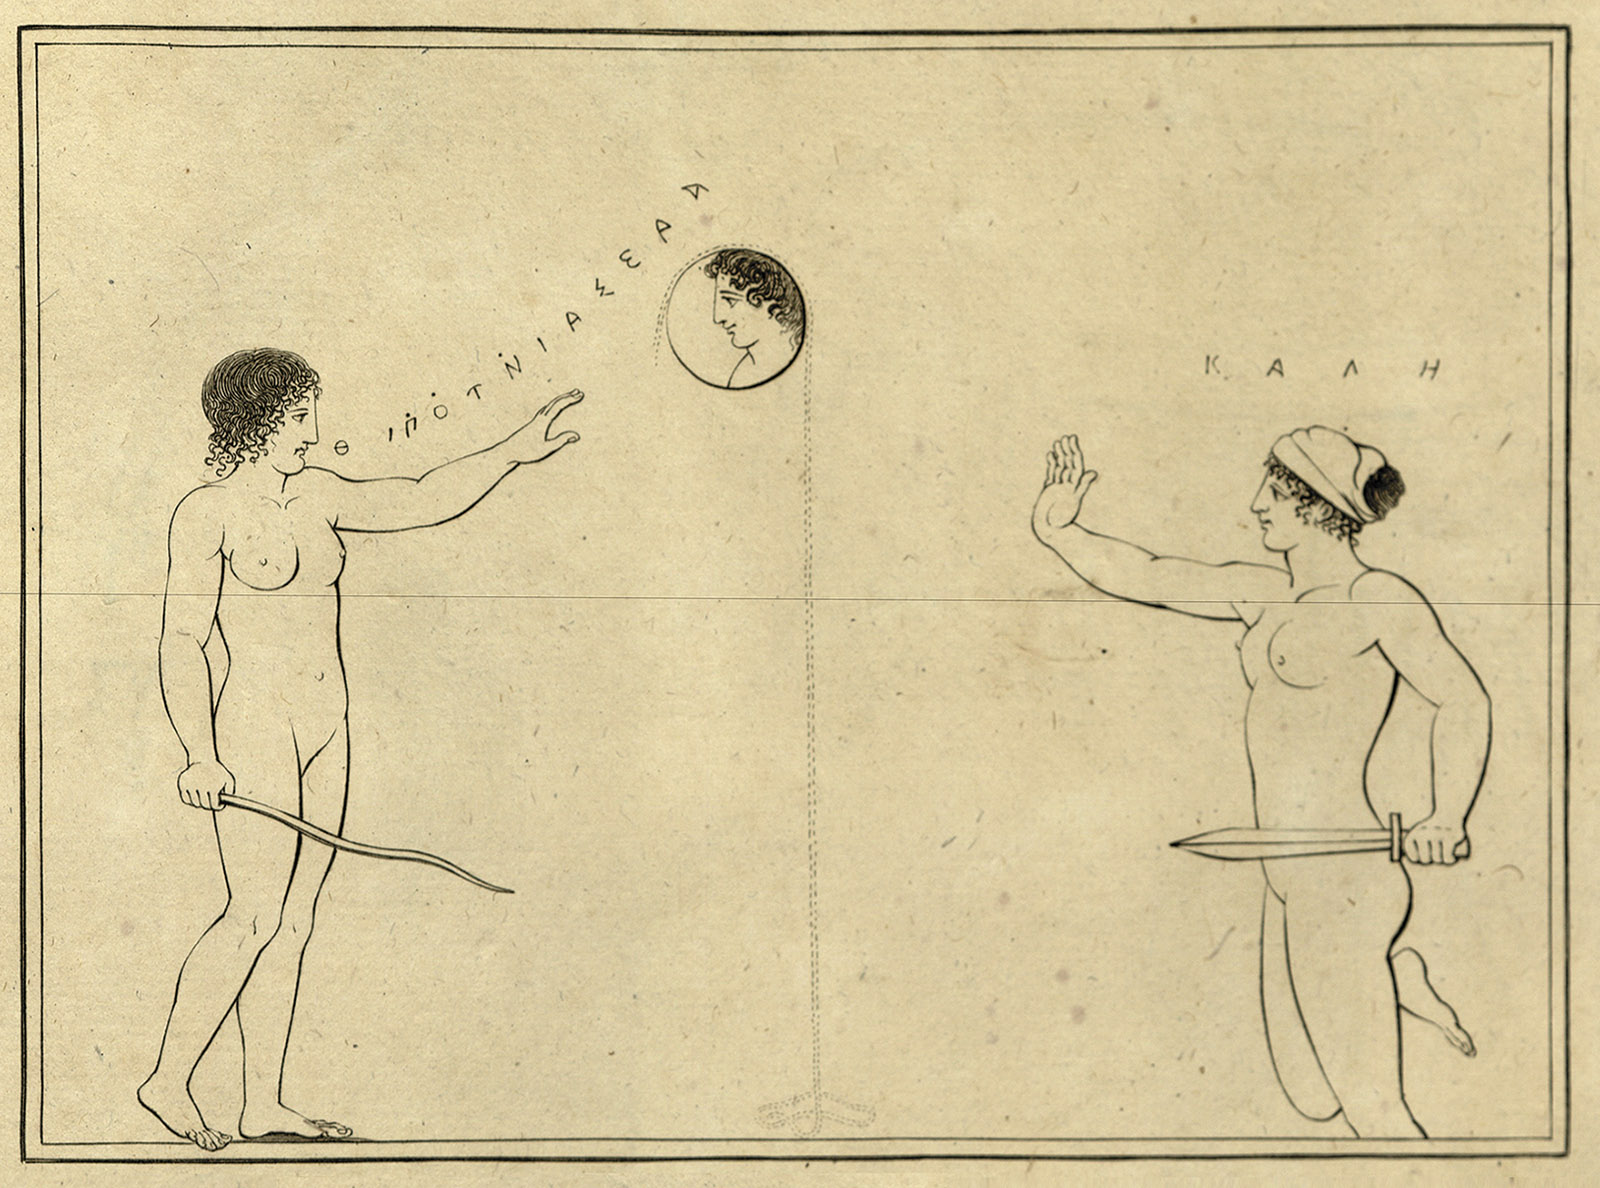 A line drawing of two women drawing down the moon